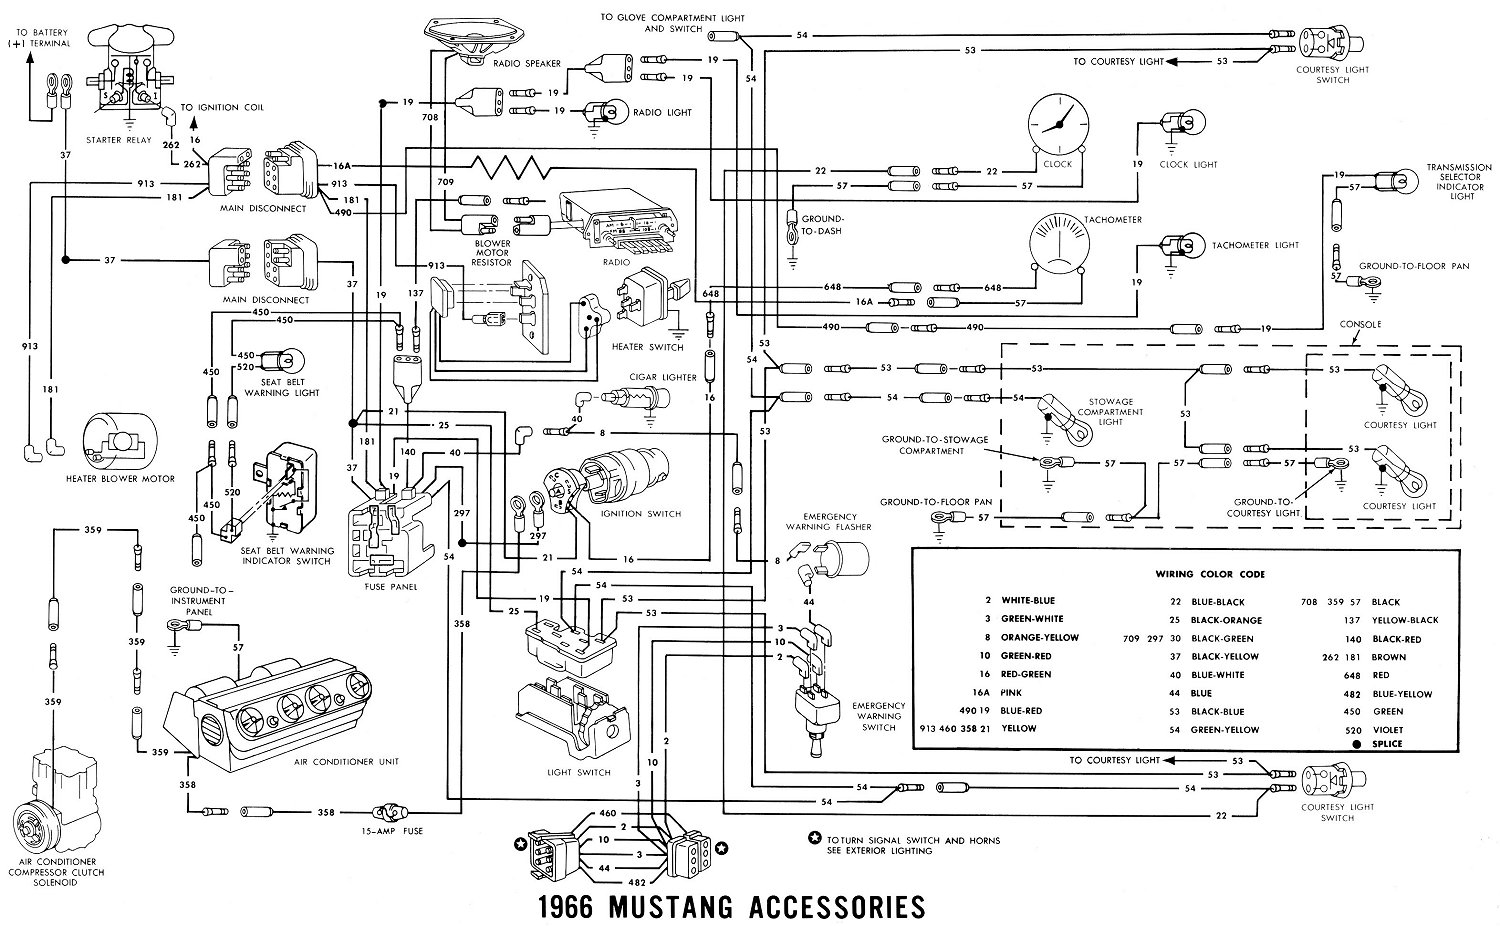 Diagram 2005 Mustang Wiring Diagram Full Version Hd Quality Wiring Diagram Diagramcoadyi Merz Spezial It